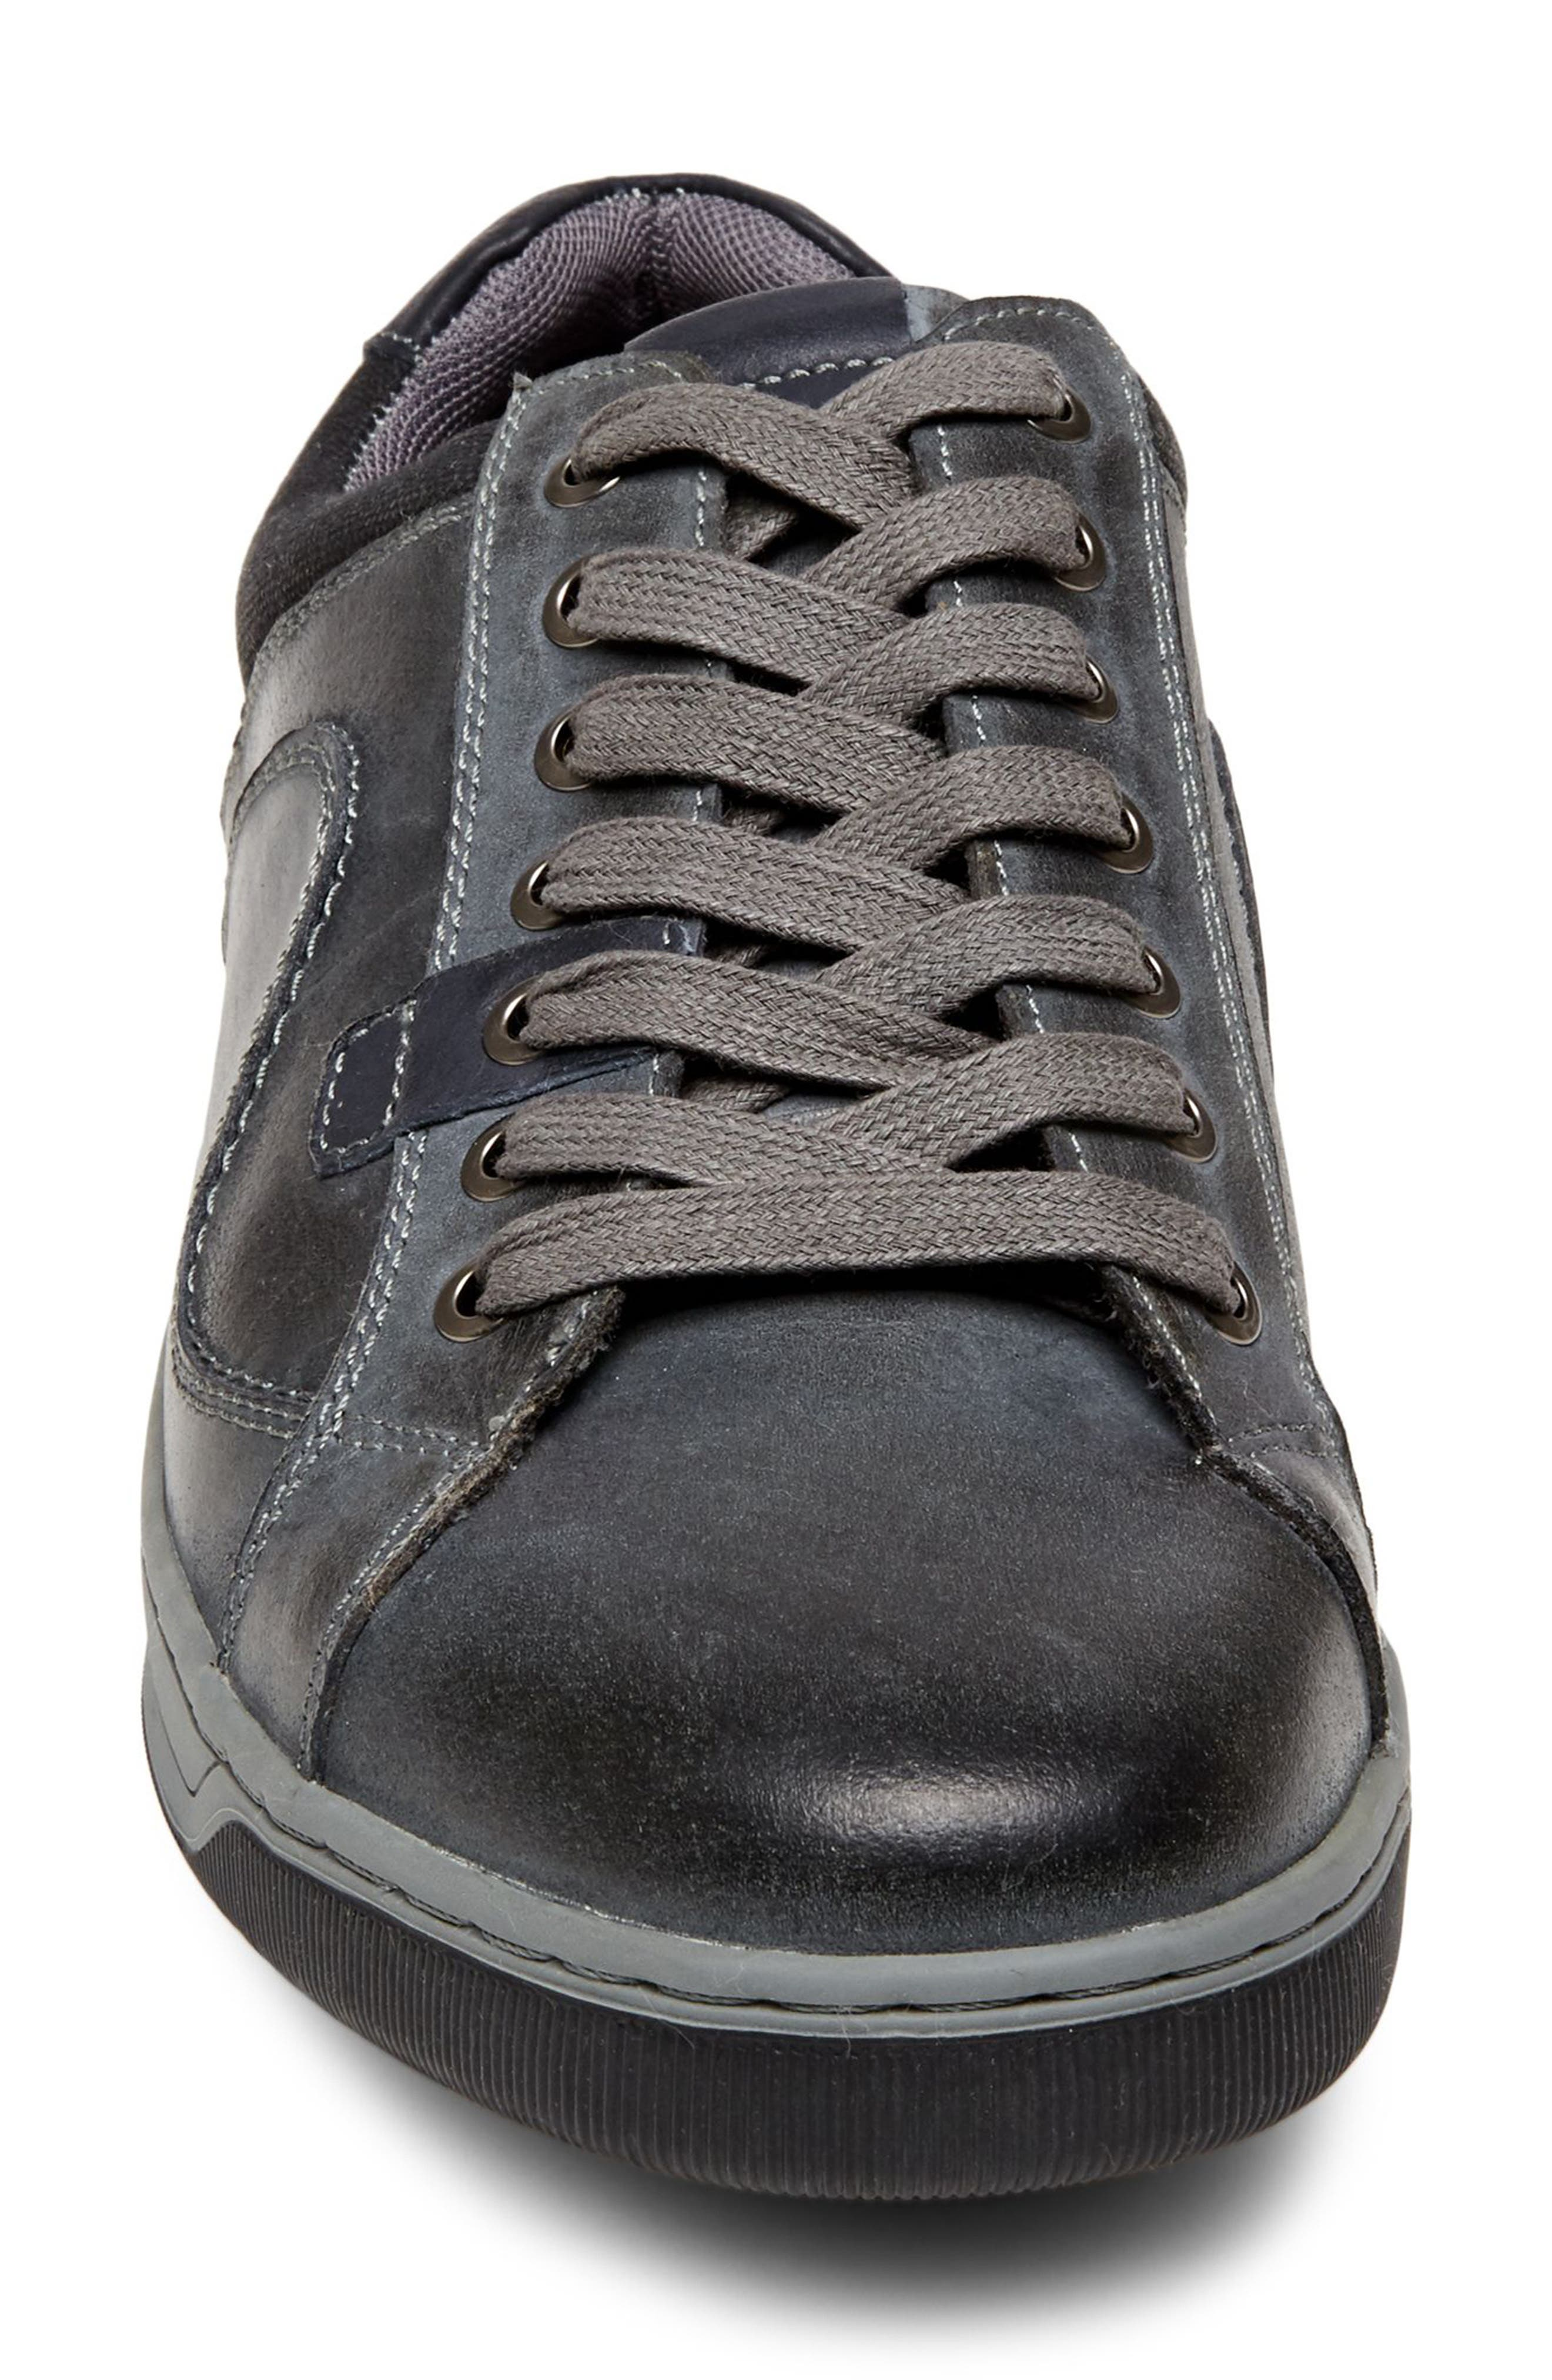 Chater Low Top Sneaker,                             Alternate thumbnail 7, color,